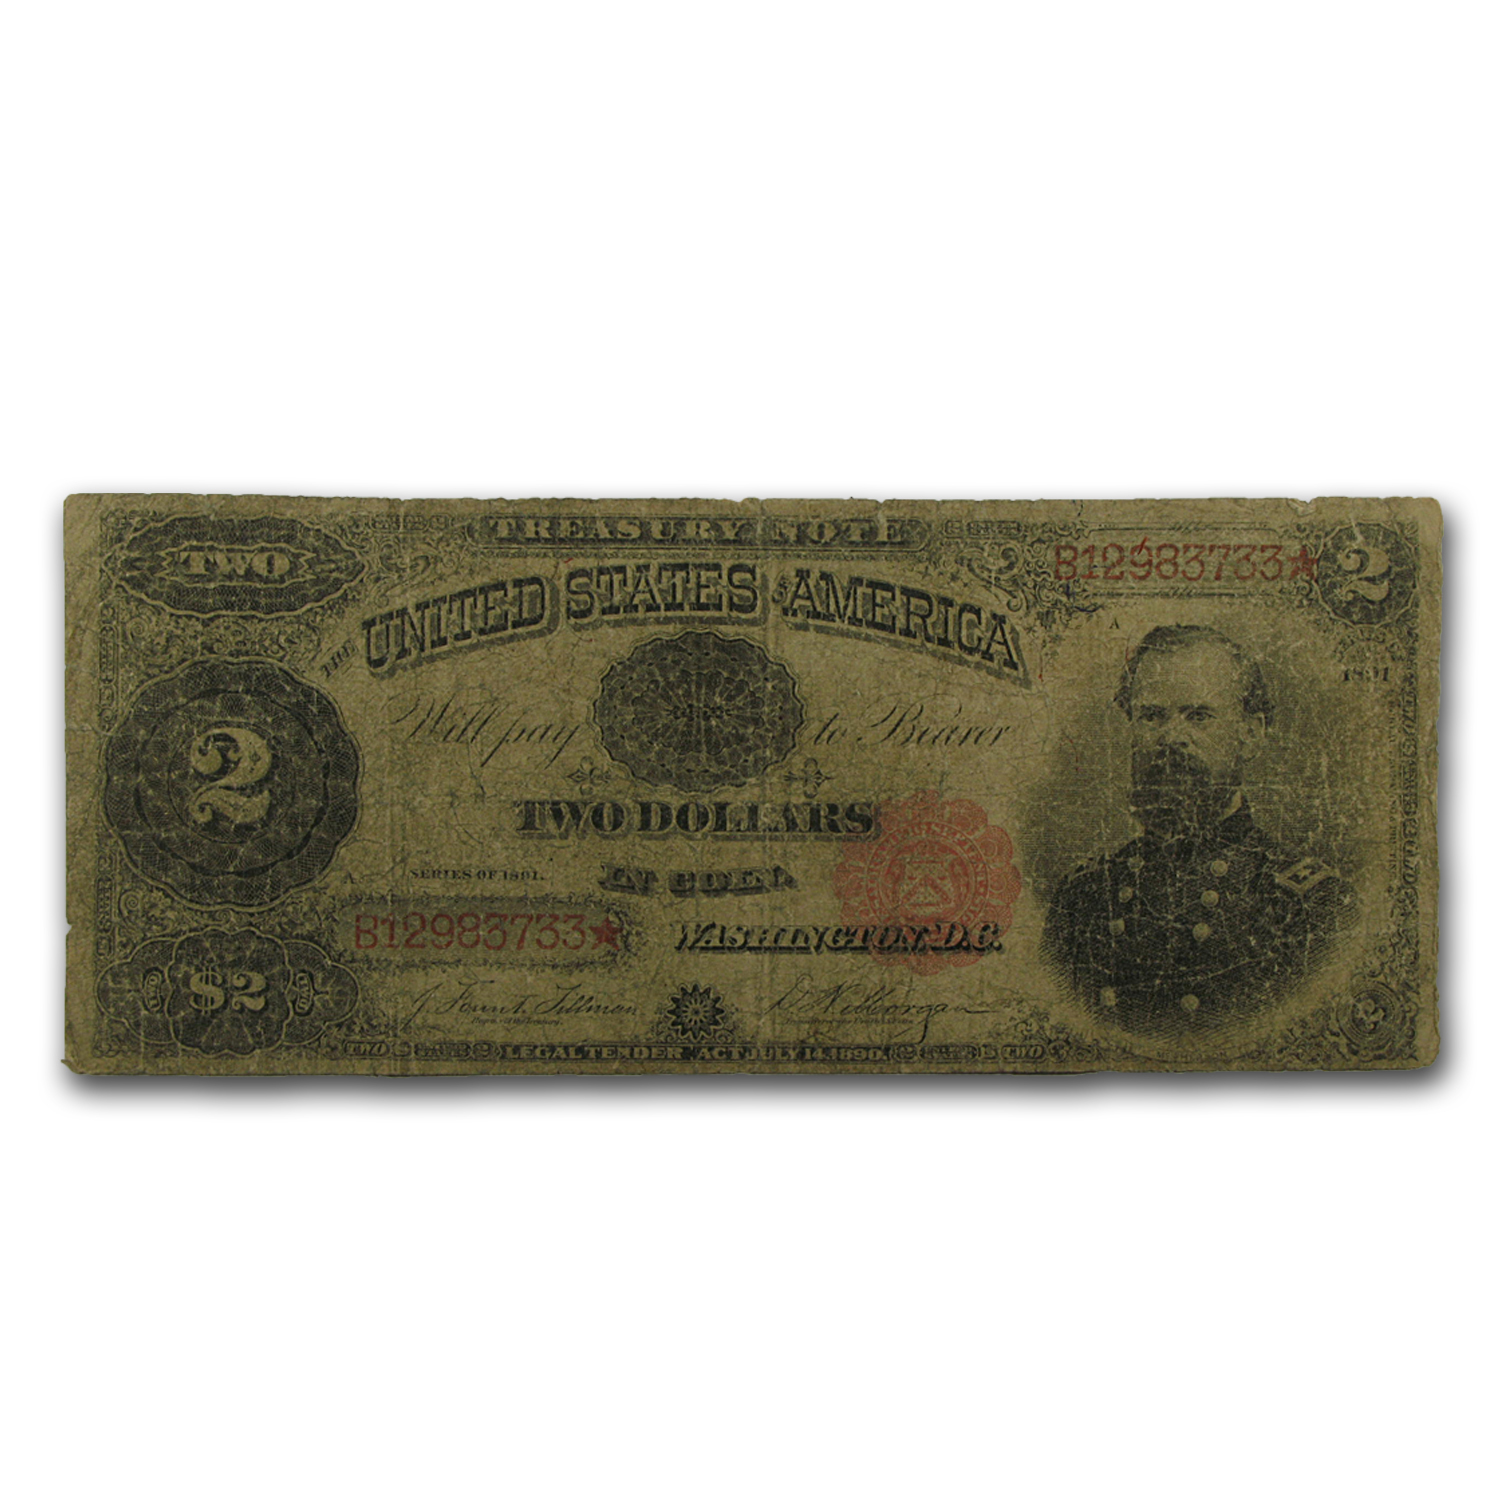 1891 $2 Treasury Note - VG